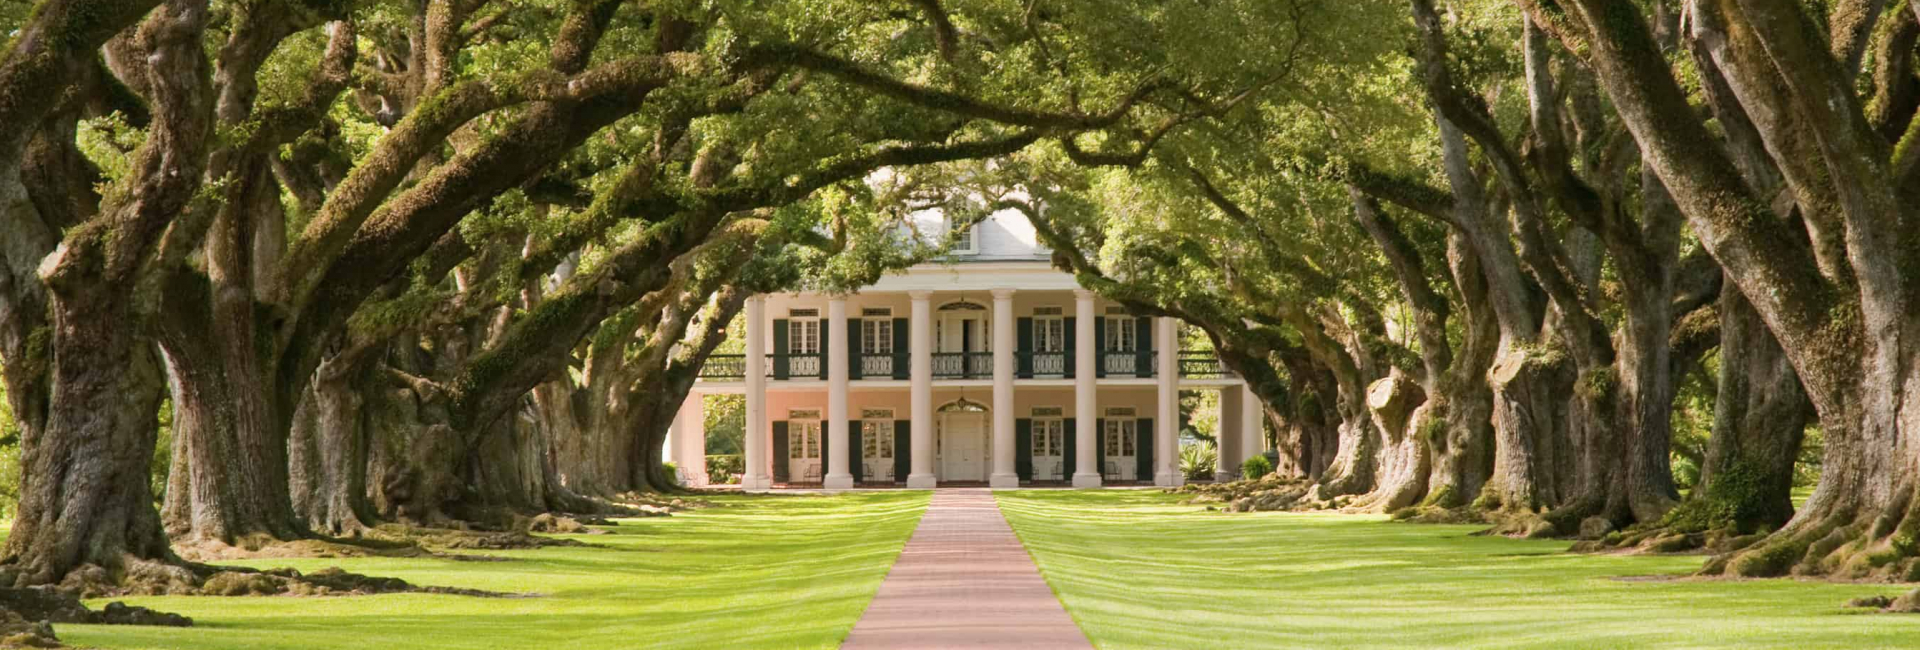 Oak Alley Plantation i USA